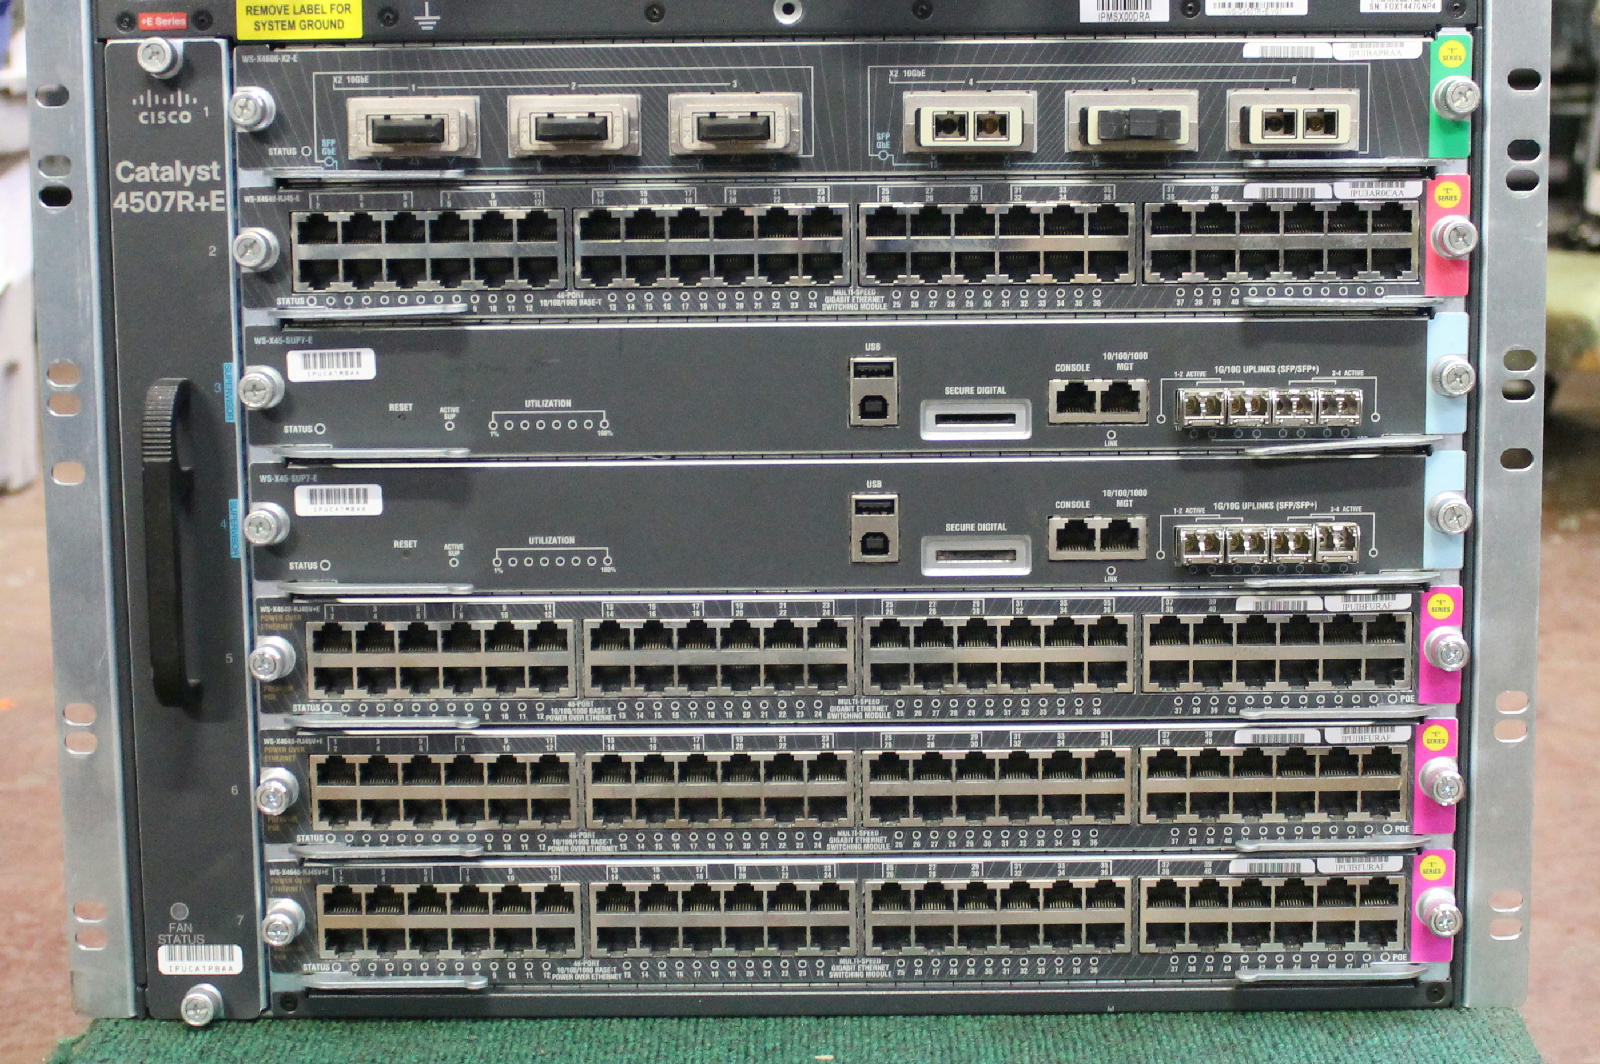 Cisco Catalyst WSC4507RE 7 Slot Chassis w 2x WSX45SUP7E 1x WS